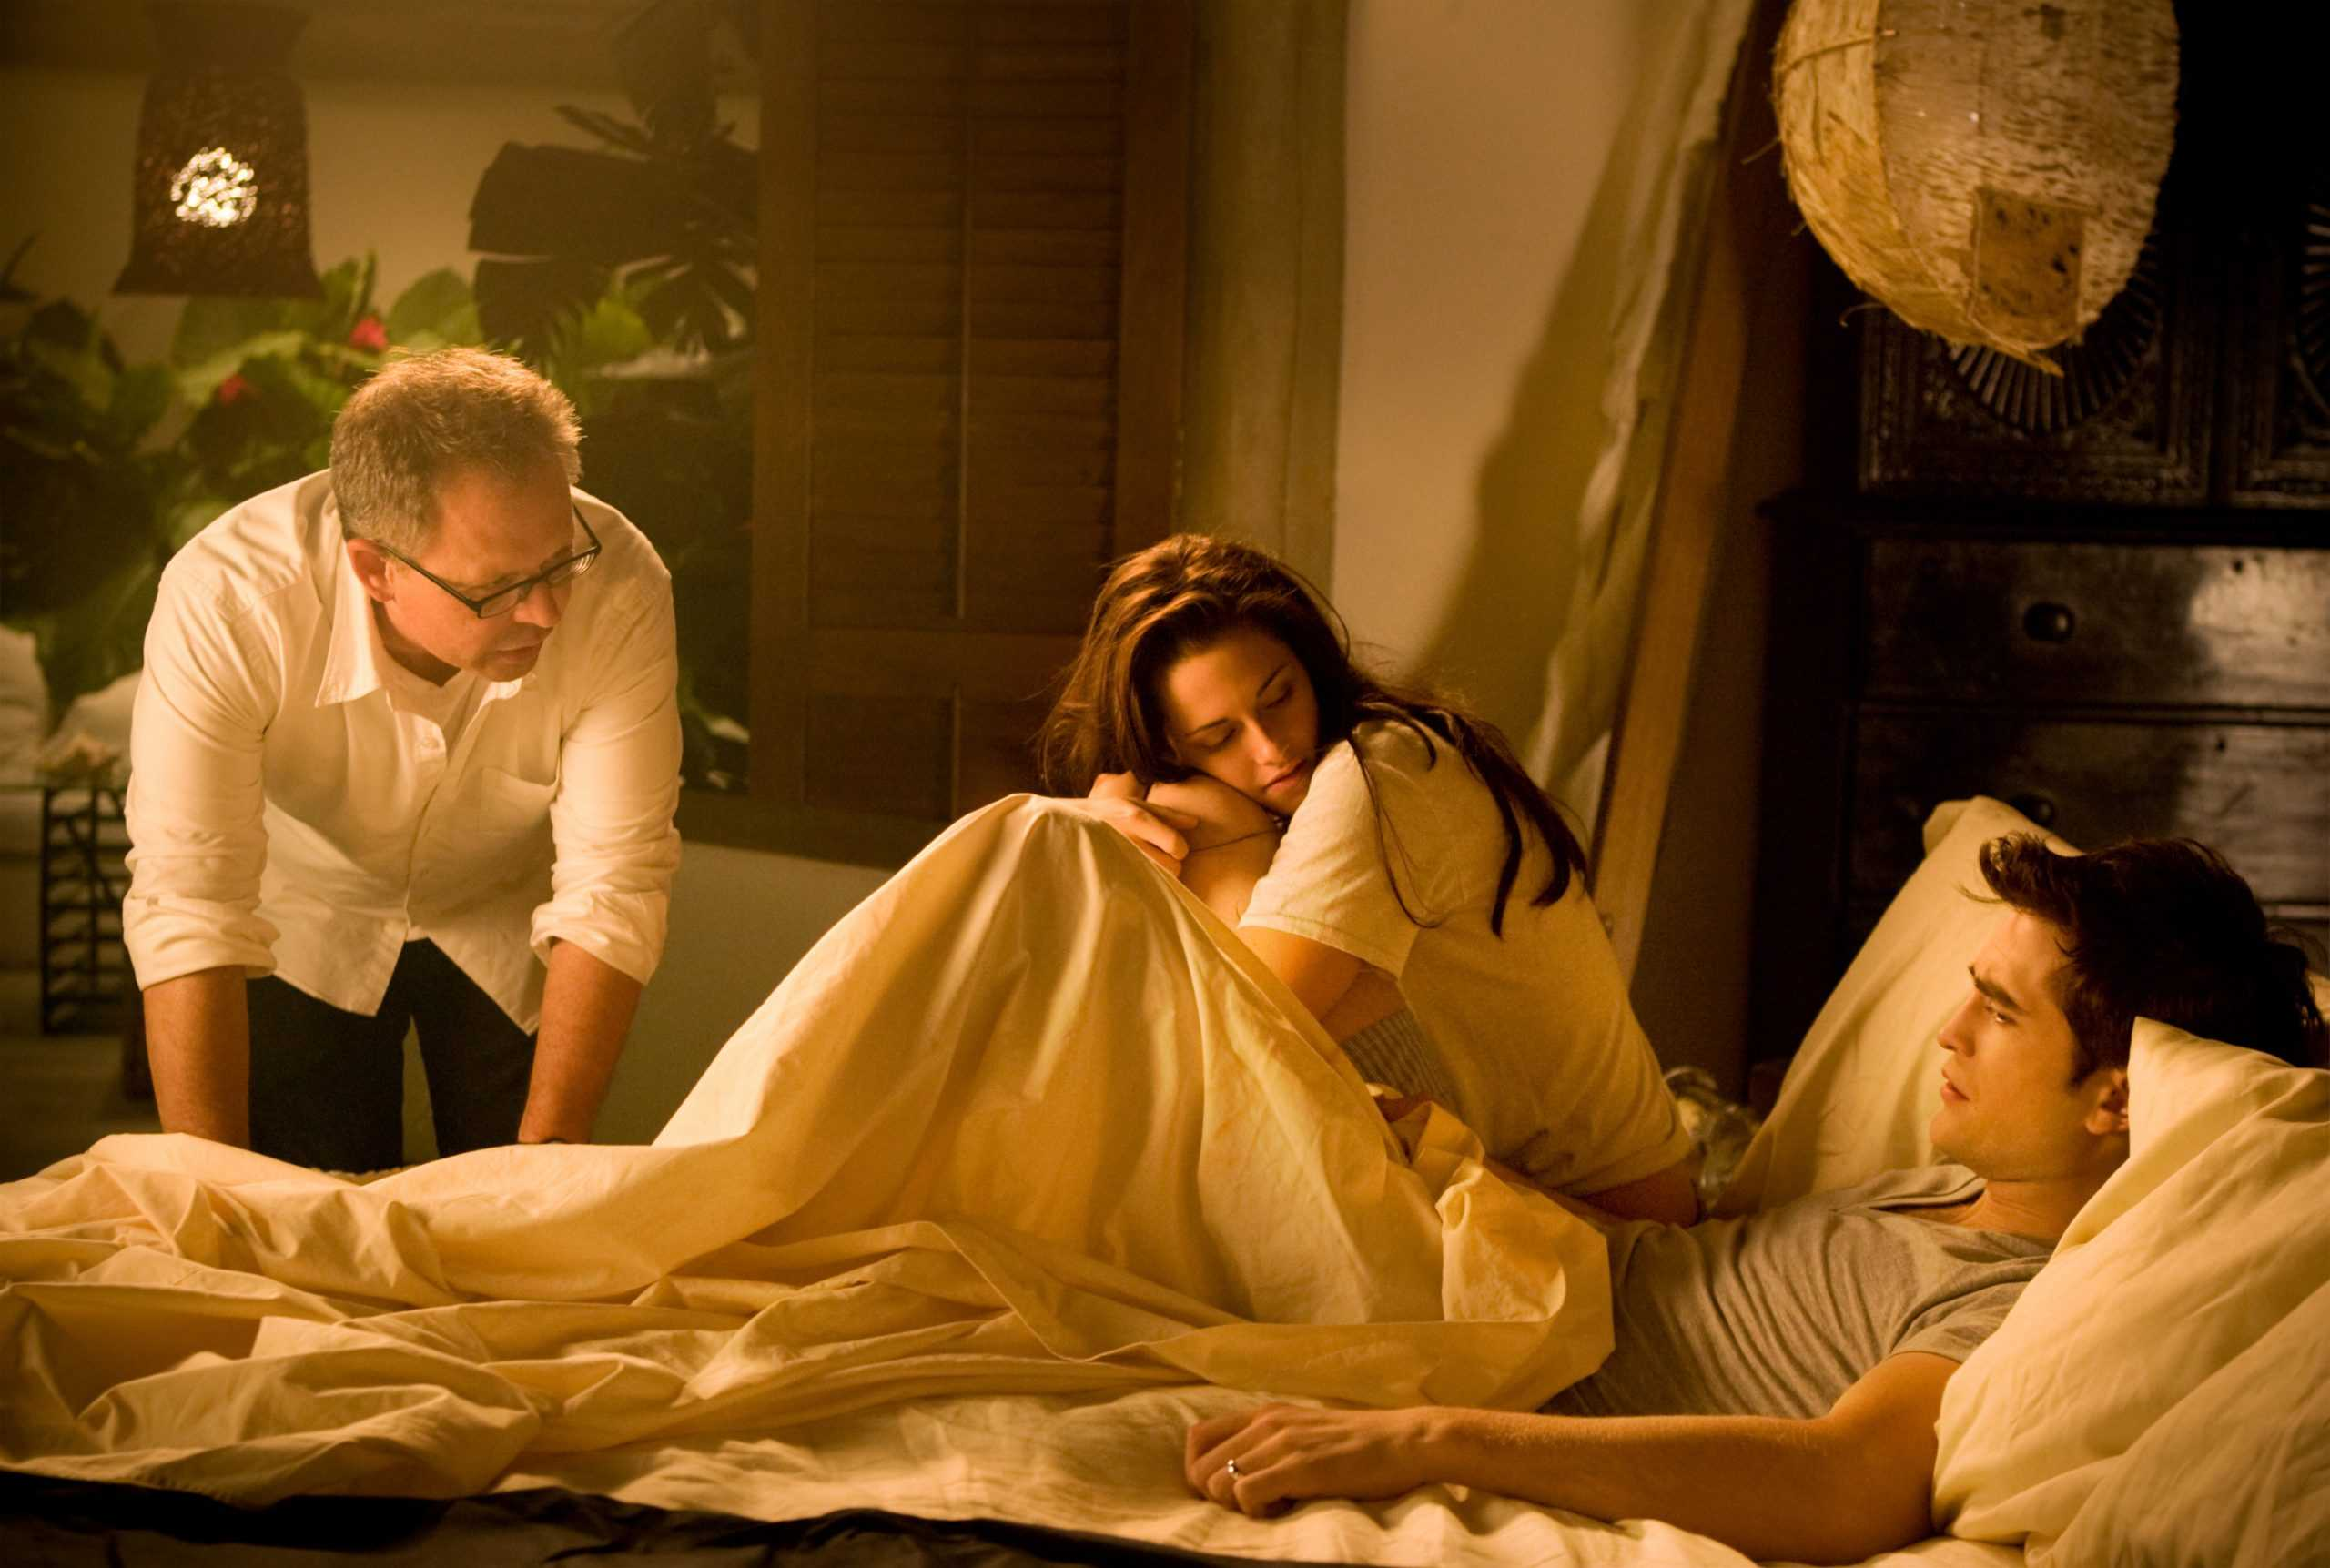 Réalisateur BILL CONDON, KRISTEN STEWART et ROBERT PATTINSON sur le tournage de THE TWILIGHT SAGA: BREAKING DAWN-PART 1